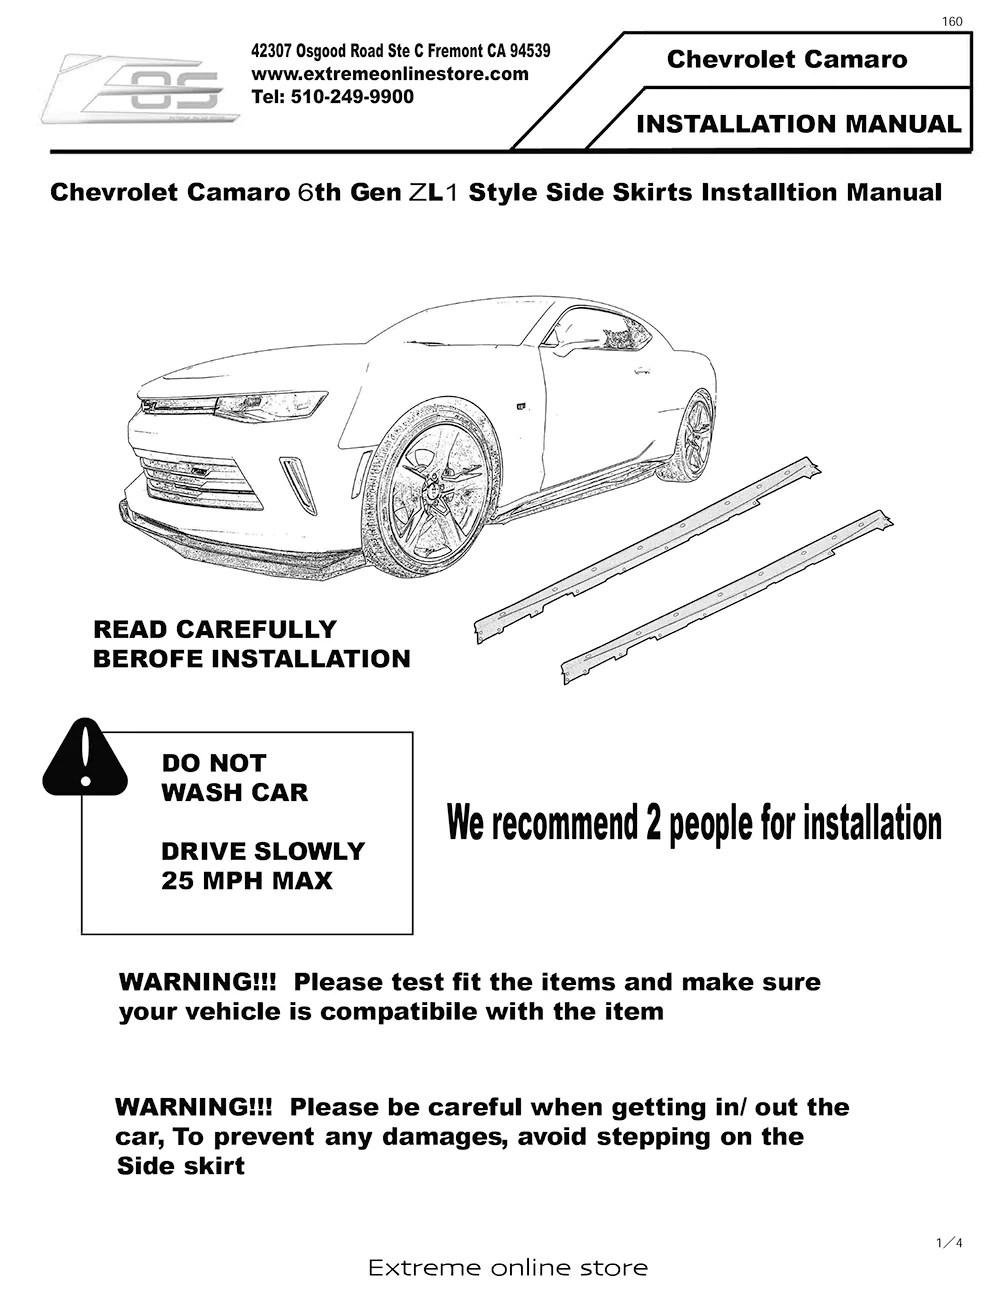 small resolution of 6th gen camaro zl1 side skirts rocker panels installation instruction